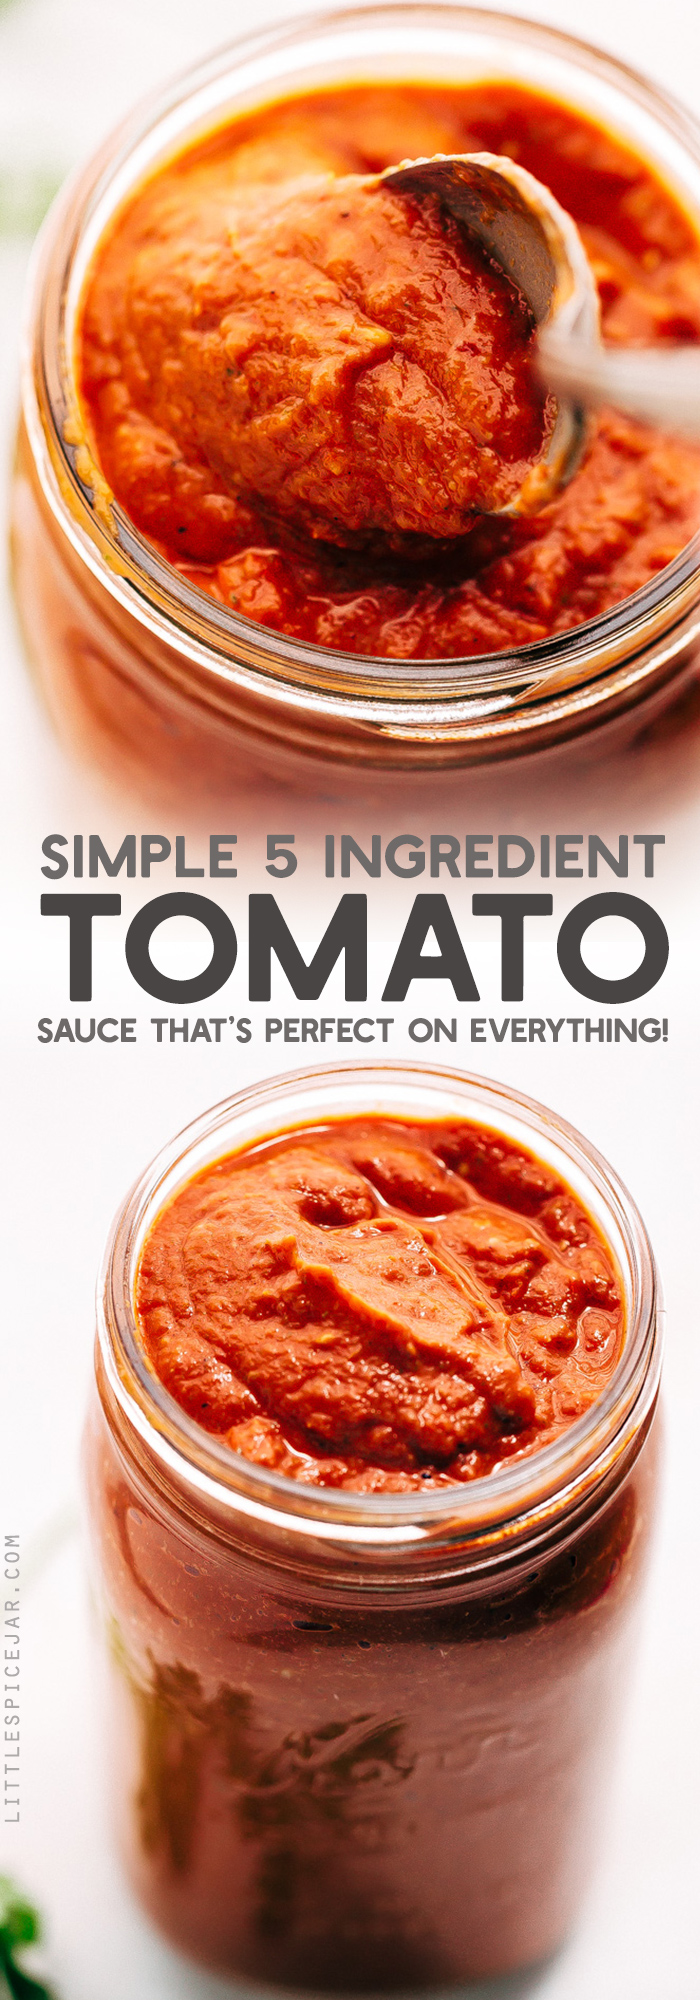 Simple 5 Ingredient Tomato Sauce - a rustic sauce that's easy to make. Just toss it all into the oven and sit back as it make your whole house smell wonderful! Perfect to use on pasta, lasagna, as a dip for sandwiches or meatballs! #tomatosauce #pizzasauce #homemaderedsauce #redsauce #tomatobasilsauce | Littlespicejar.com